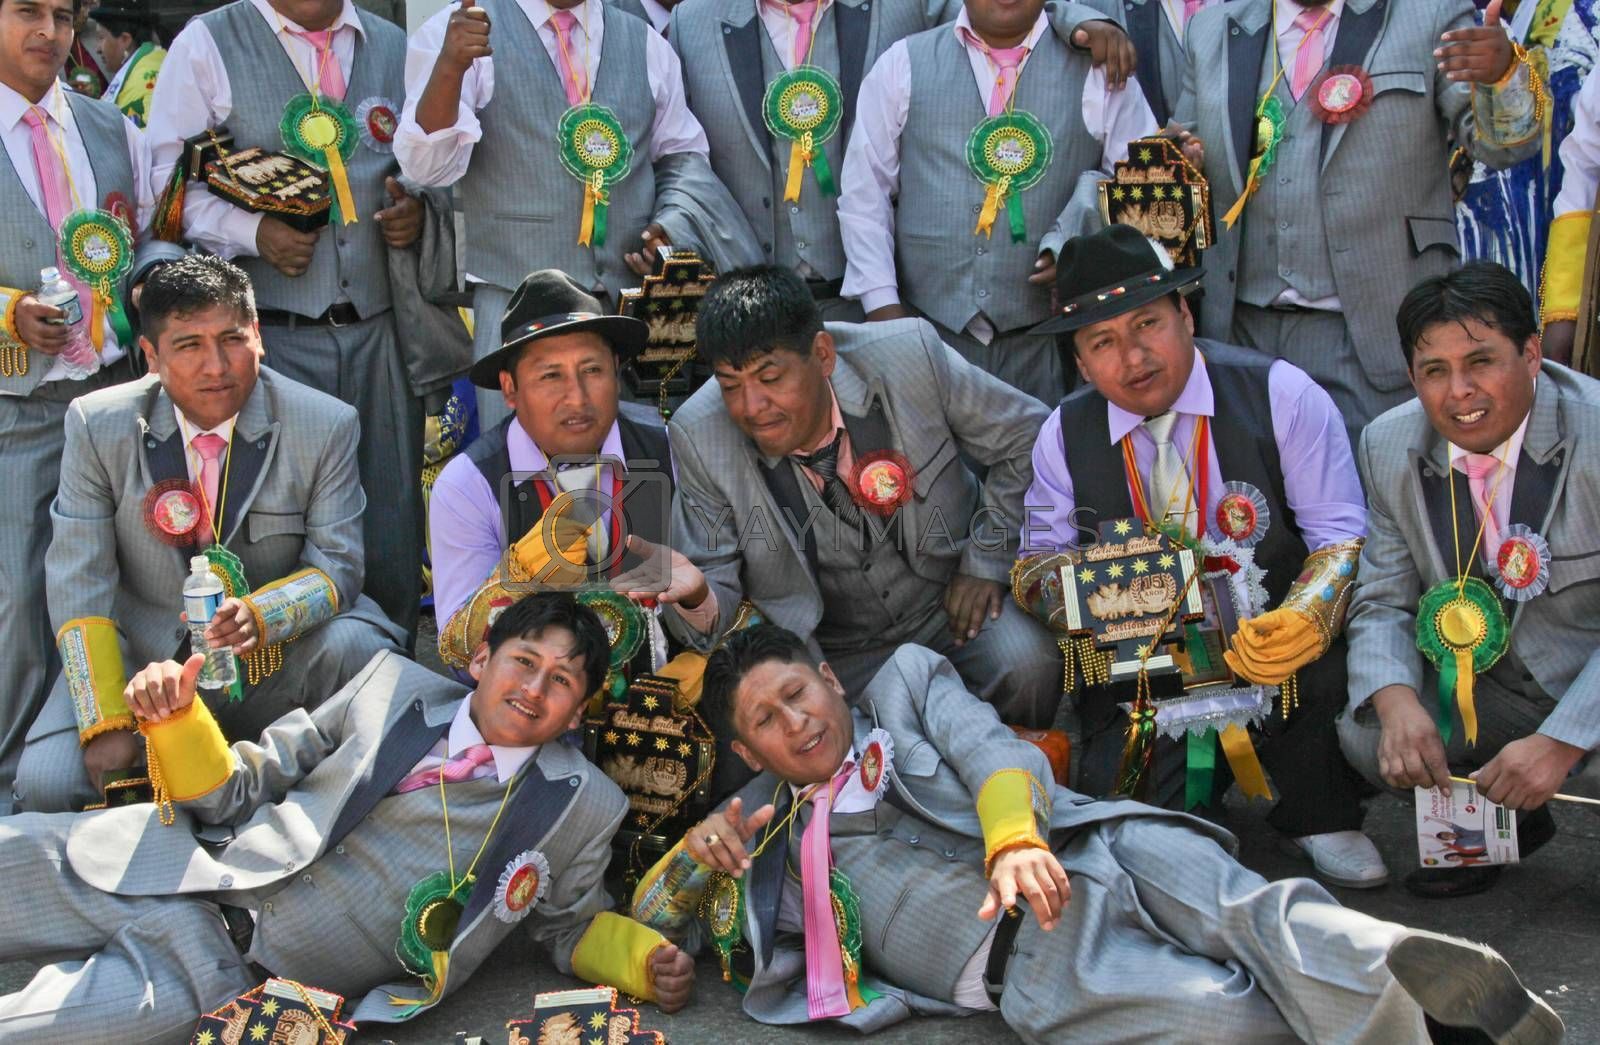 SAO PAULO, BRAZIL August 9 2015: An unidentified group of men with typical costumes wait for the Morenada parade in Bolivian Independence Day celebration in Sao Paulo Brazil.